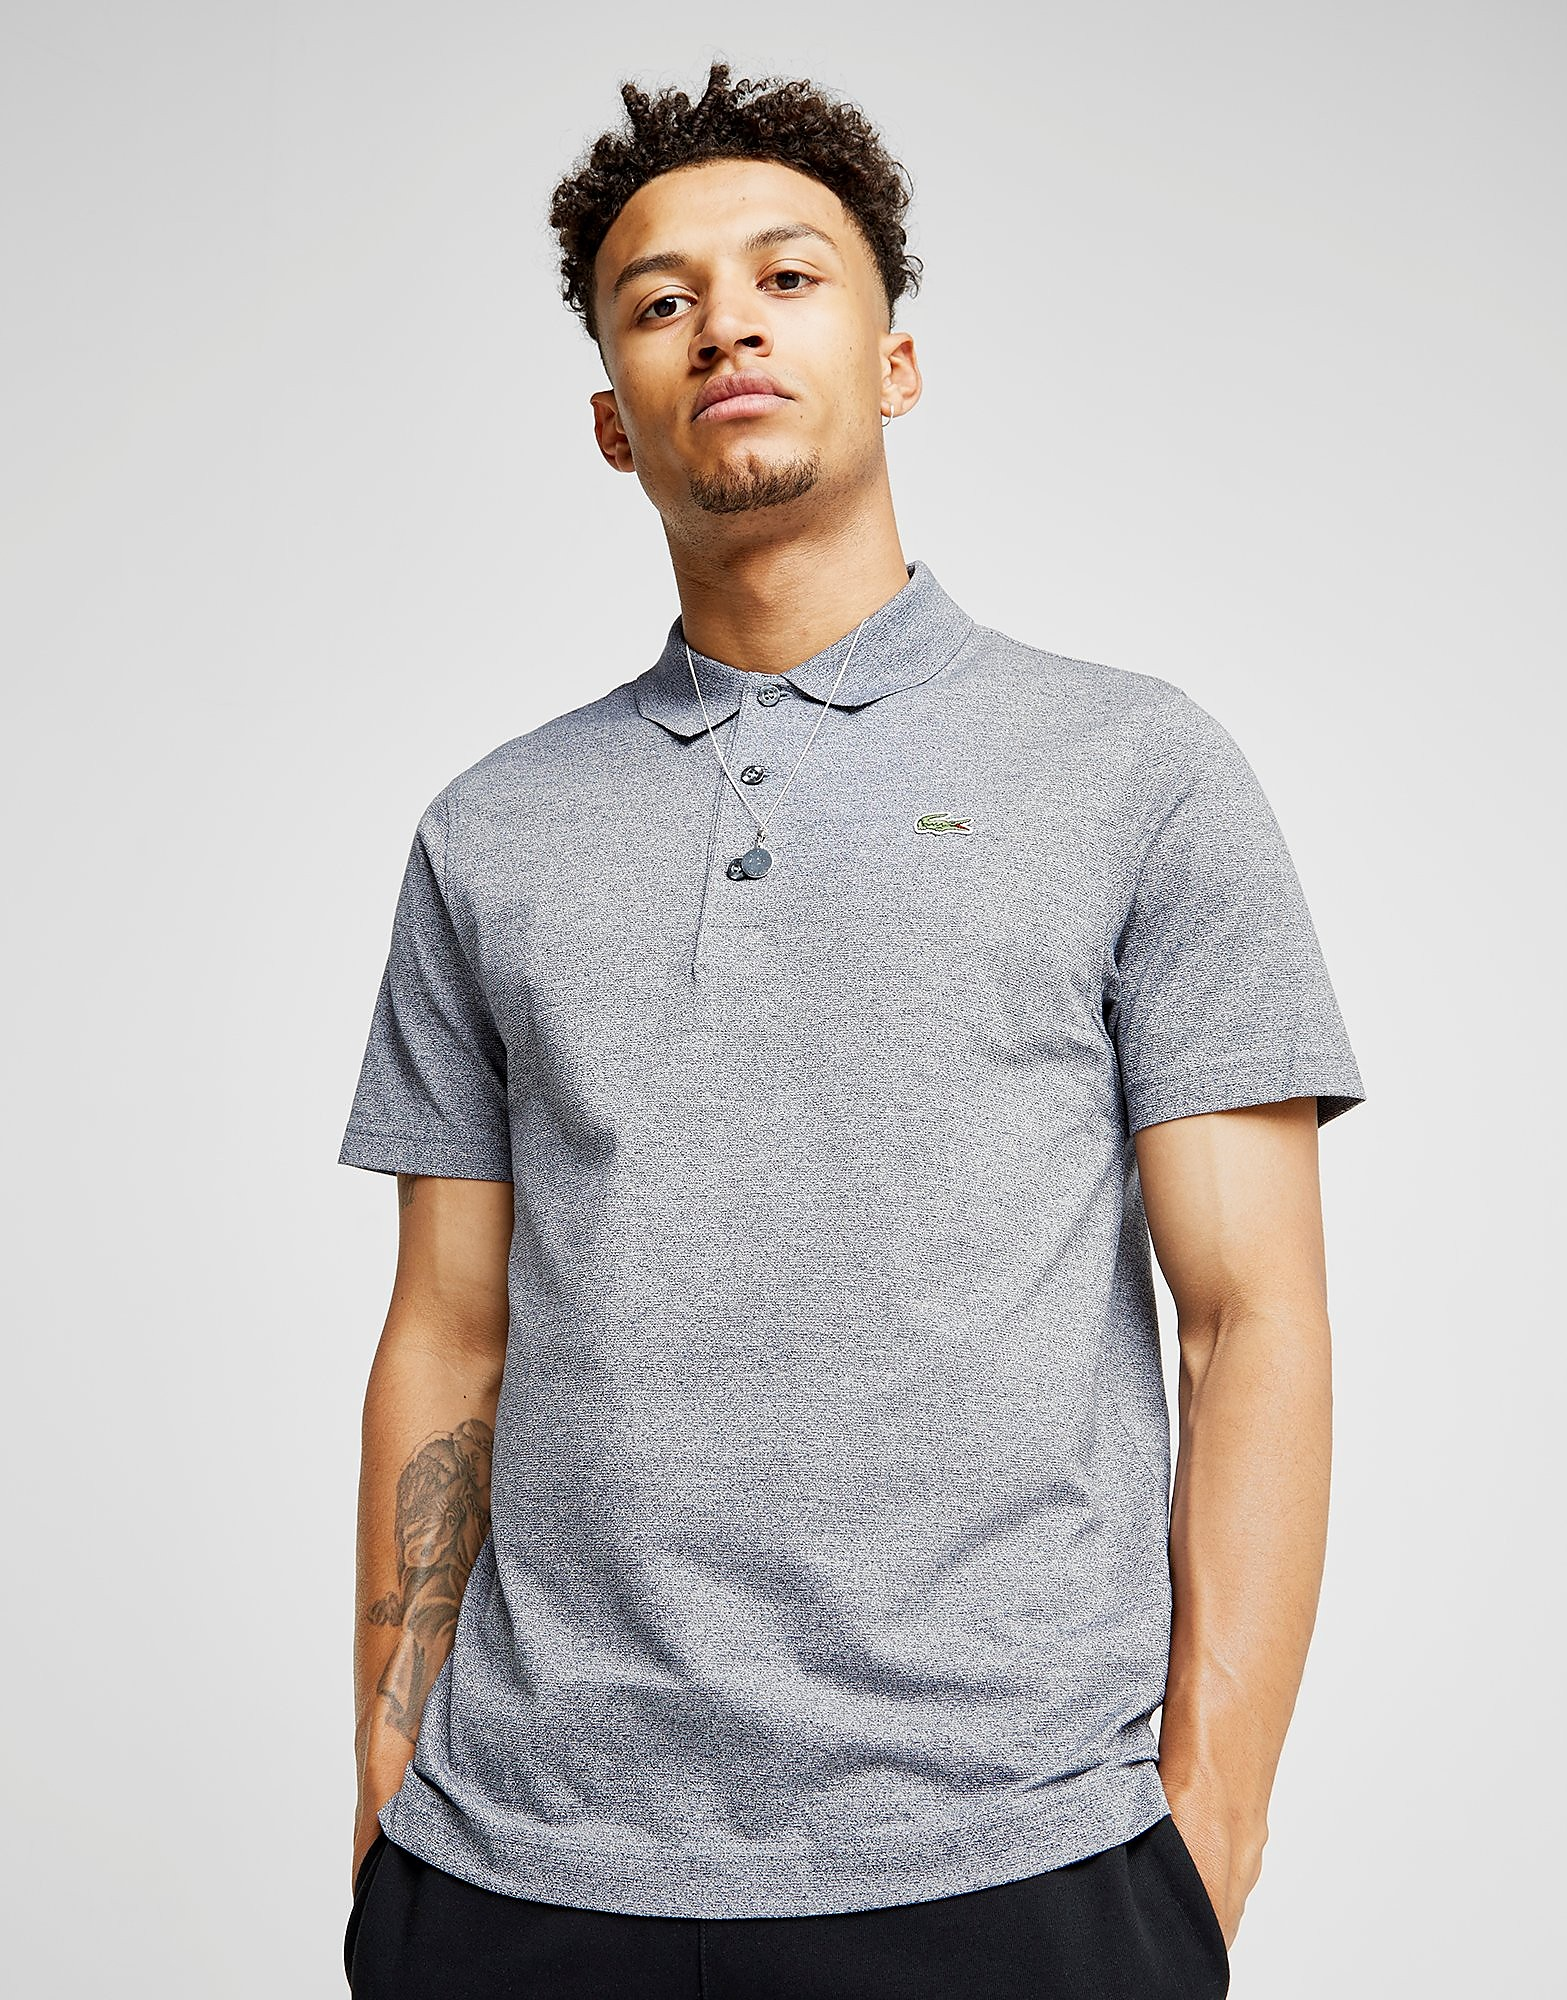 Lacoste Alligator Kuzärmeliges Polo Shirt